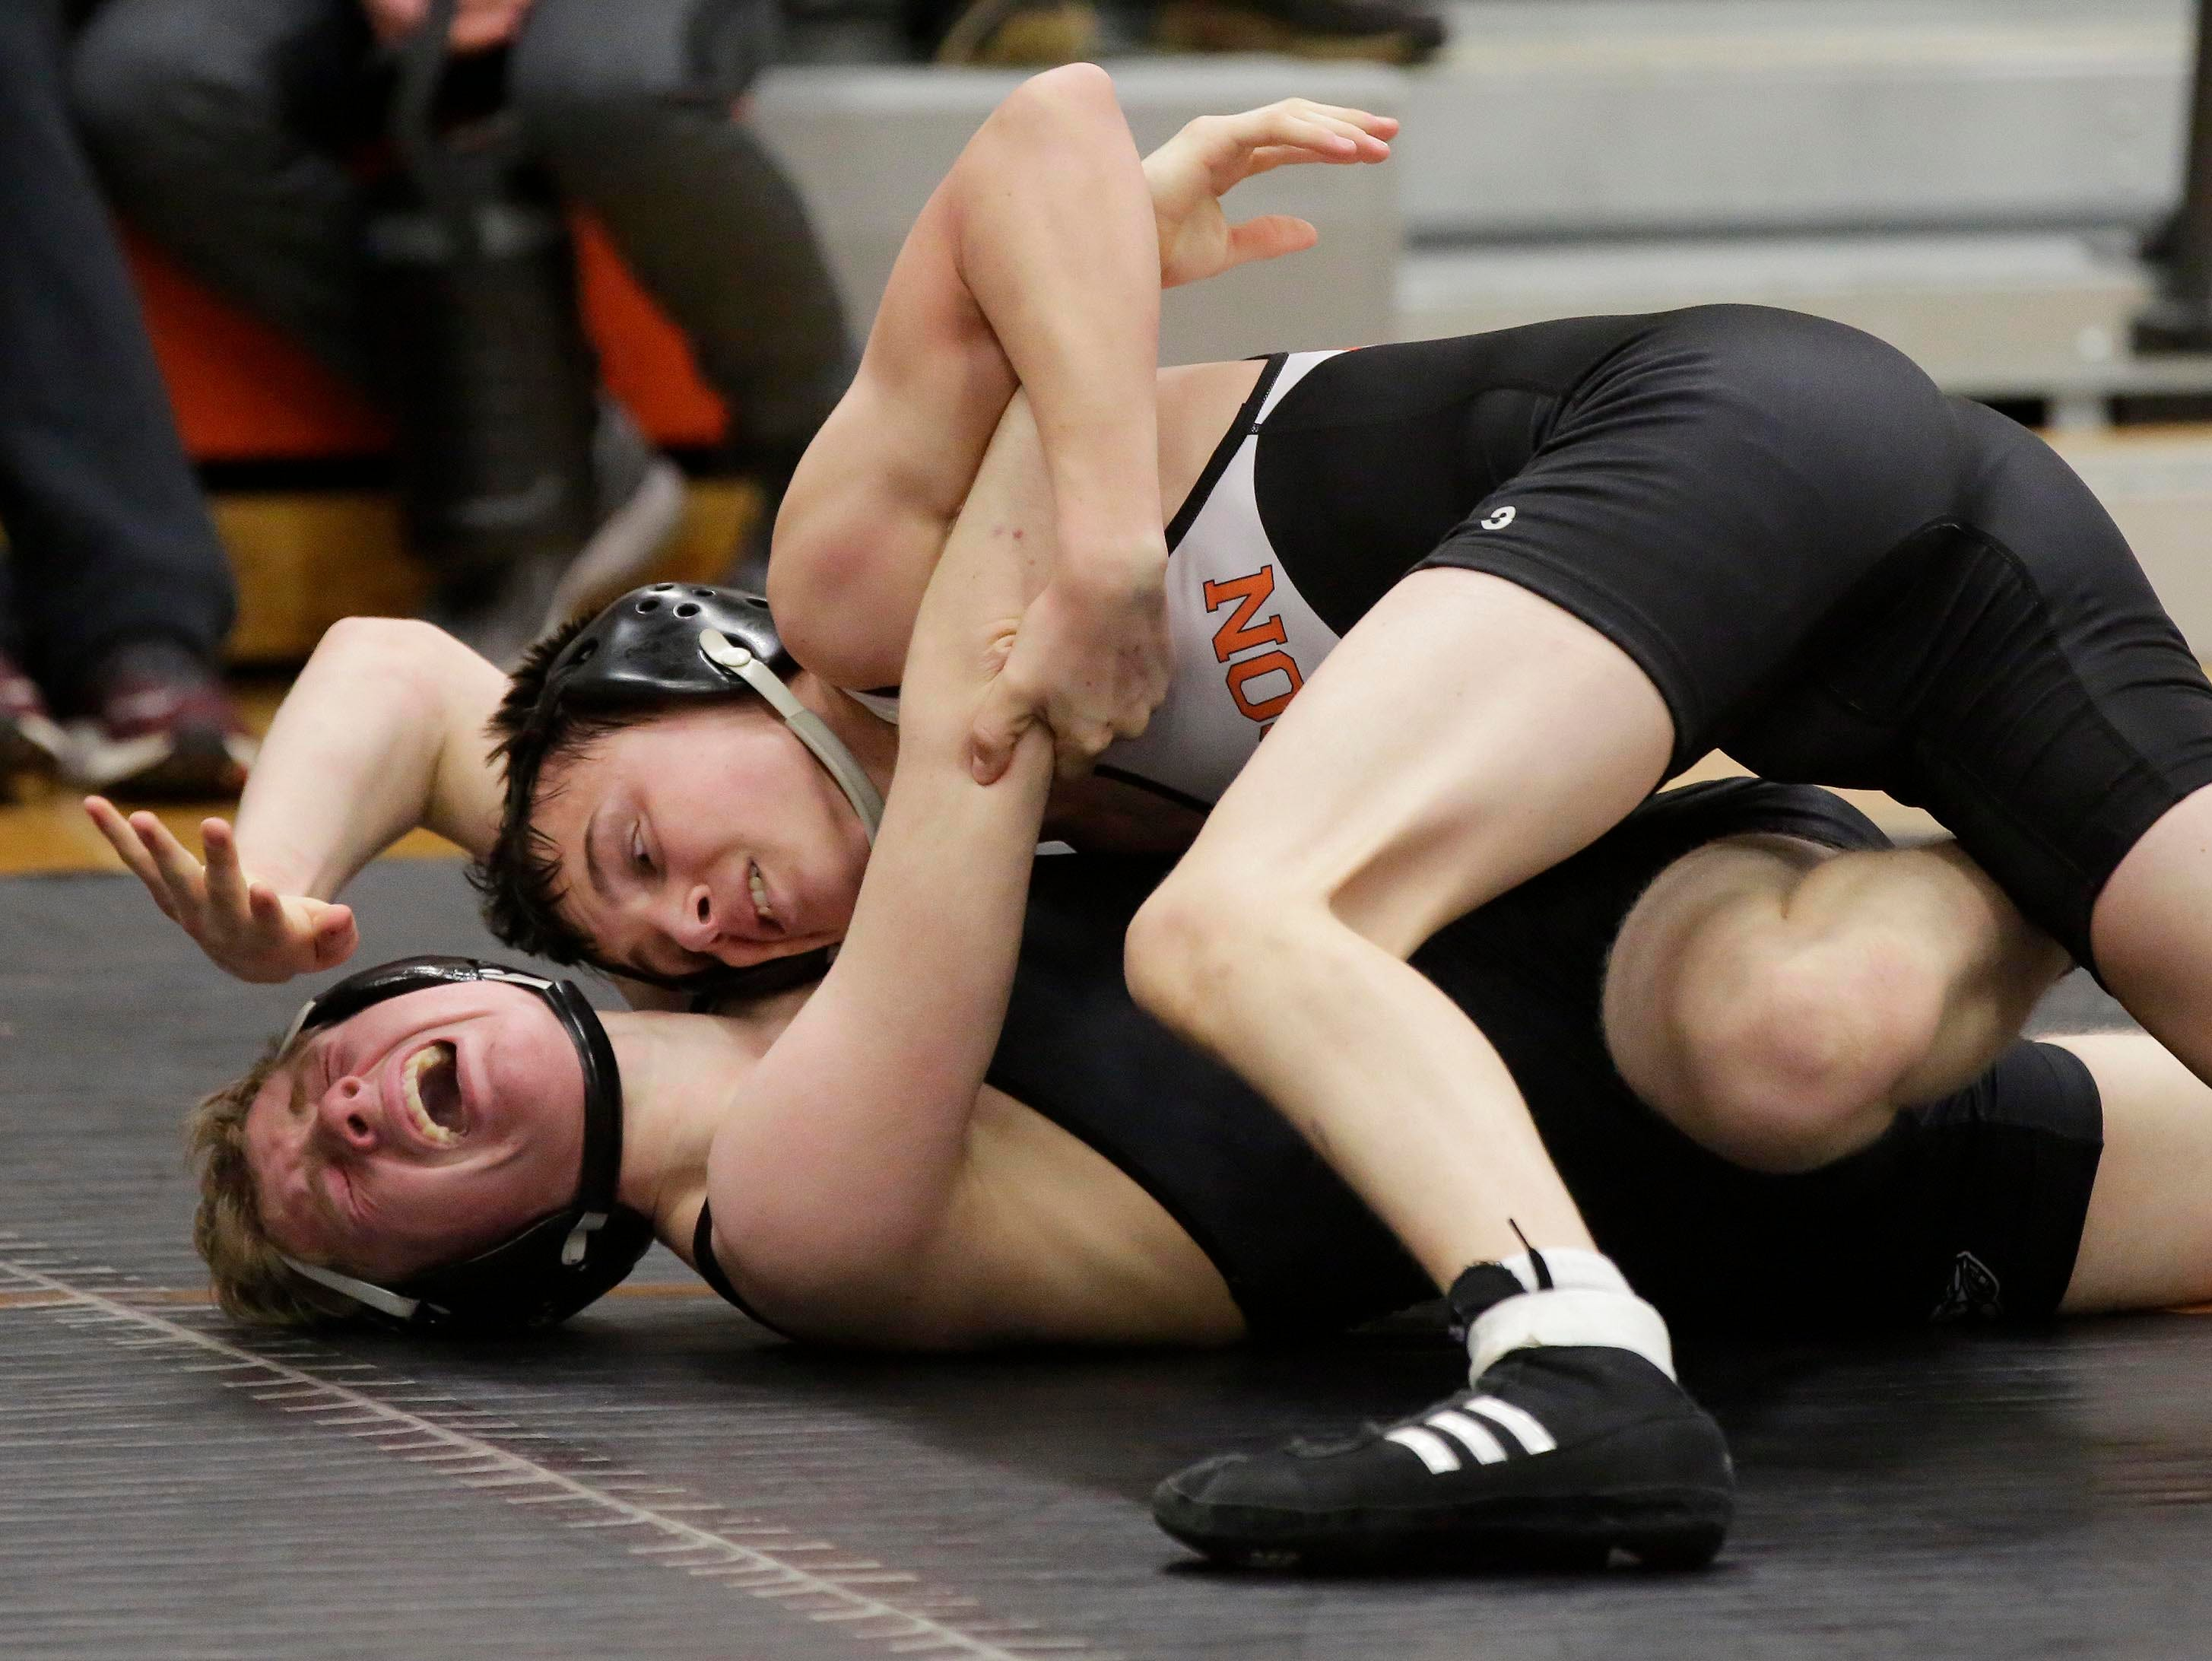 Horicon's Chance Tuttle, top, puts the squeeze on Random Lake's Dylan Weiss in a 120-pound bout at the WIAA Div. 3 Wrestling Regional, Saturday, February 9, 2019, in Oakfield, Wis. 